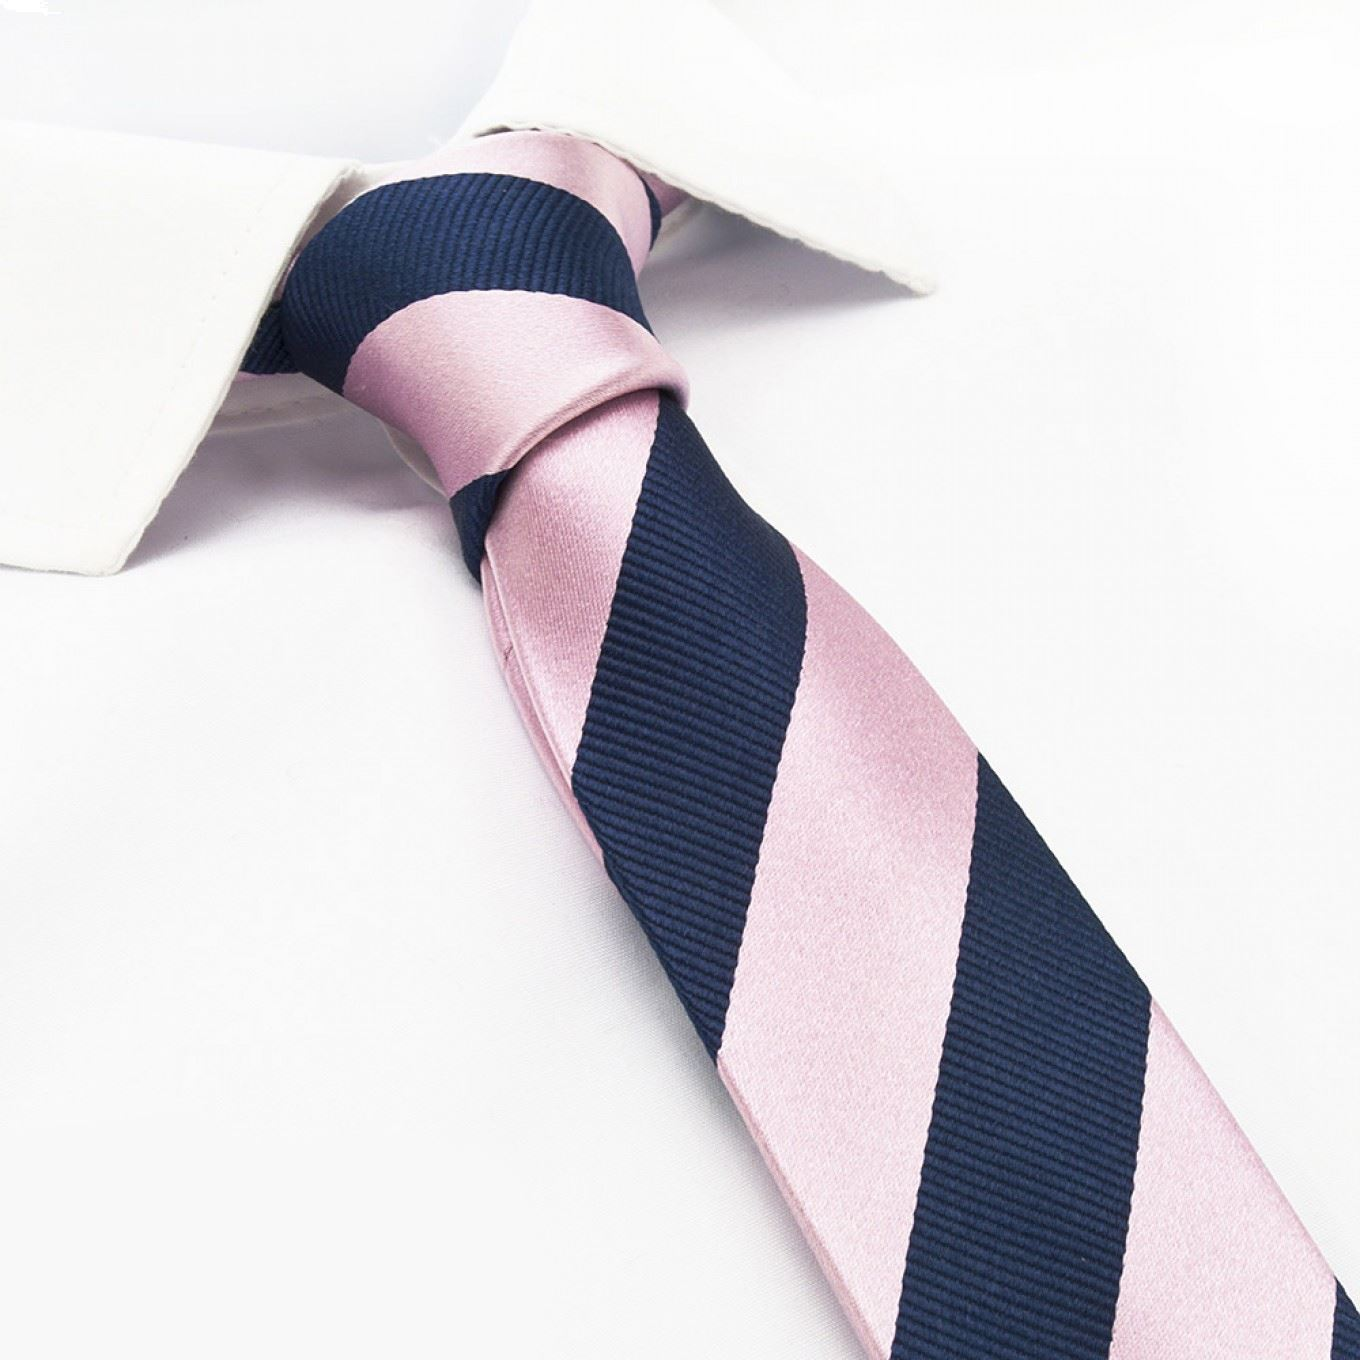 6a89ffde50e4 Pink & Navy Woven Striped Slim Silk Tie – The Cufflink Store